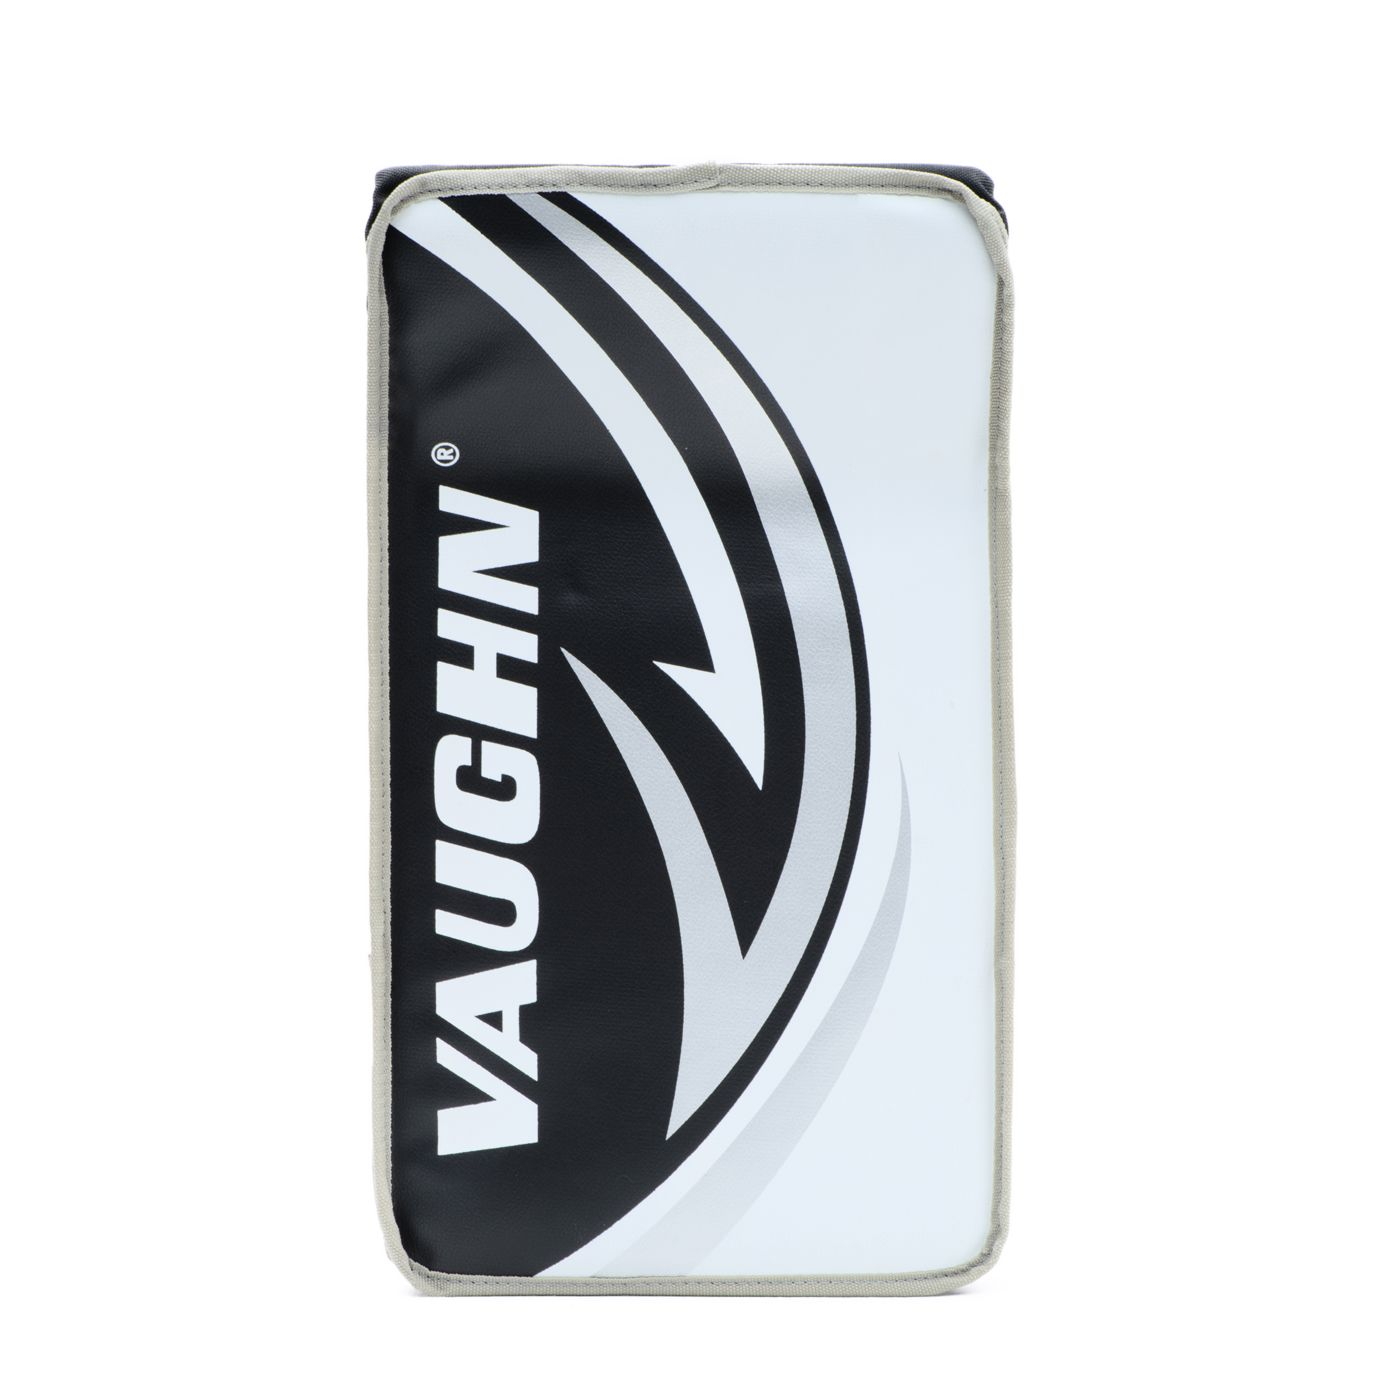 Vaughn Senior Pro Street Hockey Goalie Blocker